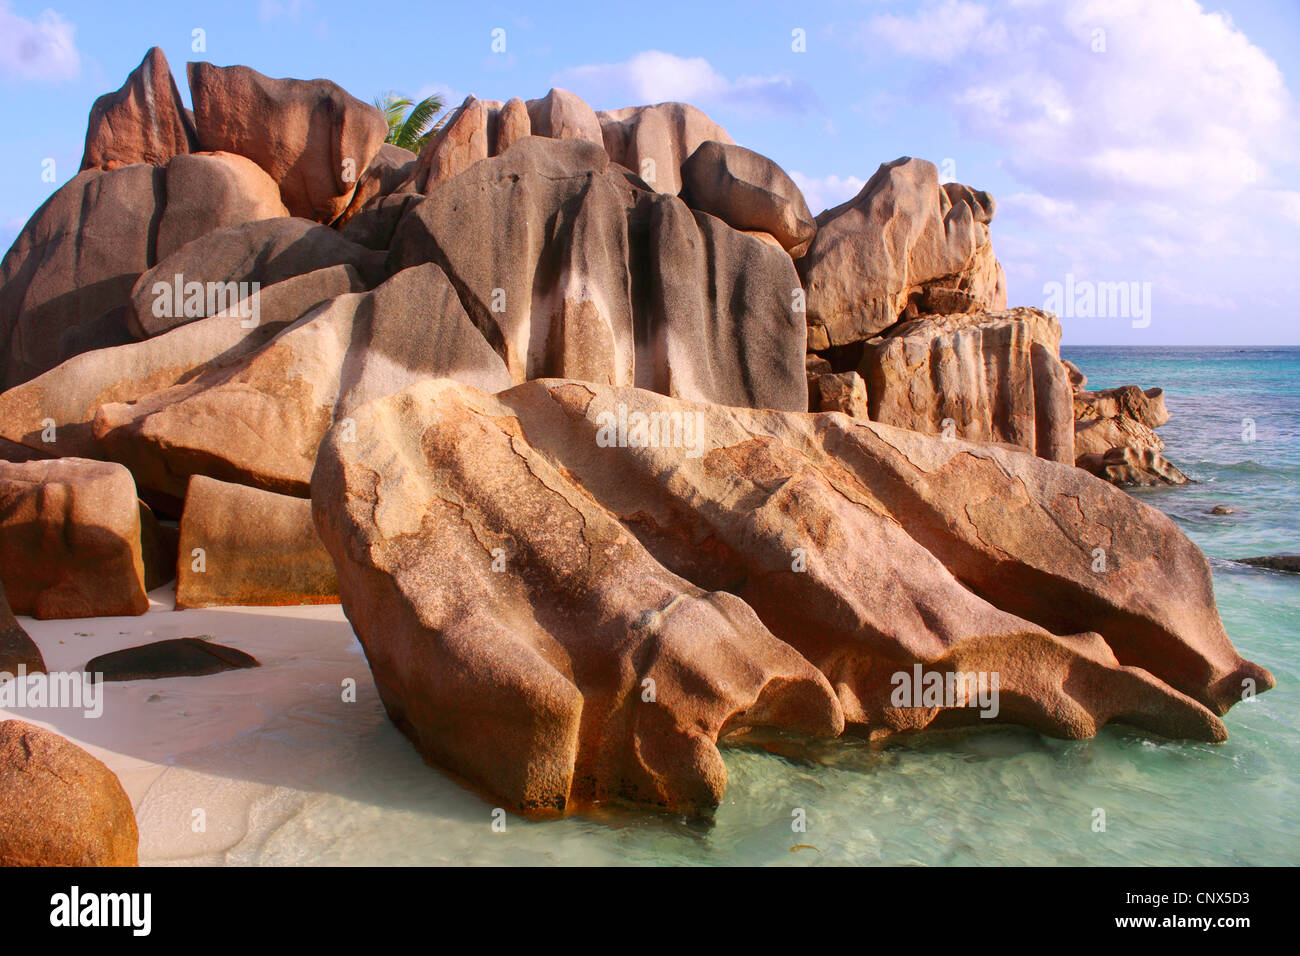 granite formation on the beach Anse Coco, Seychelles, La Digue - Stock Image